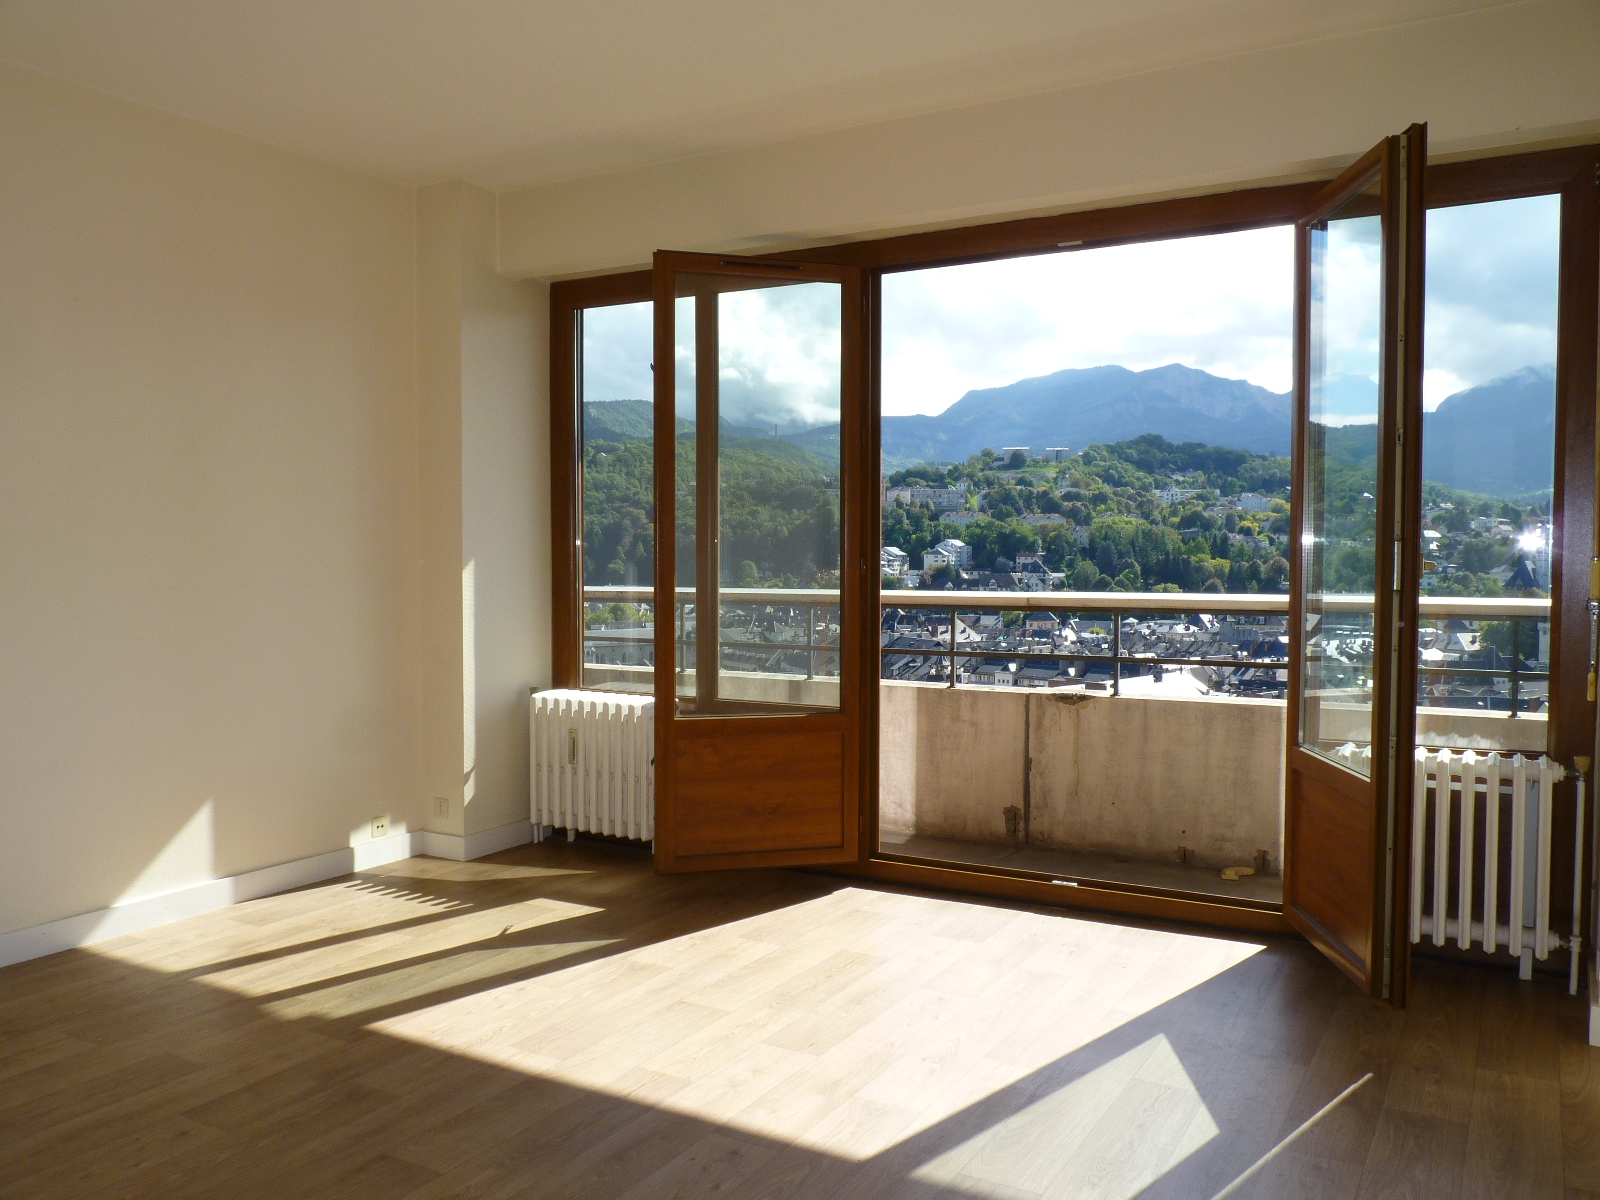 Agence des horizons appartement t3 louer chambery for Agence de location appartement